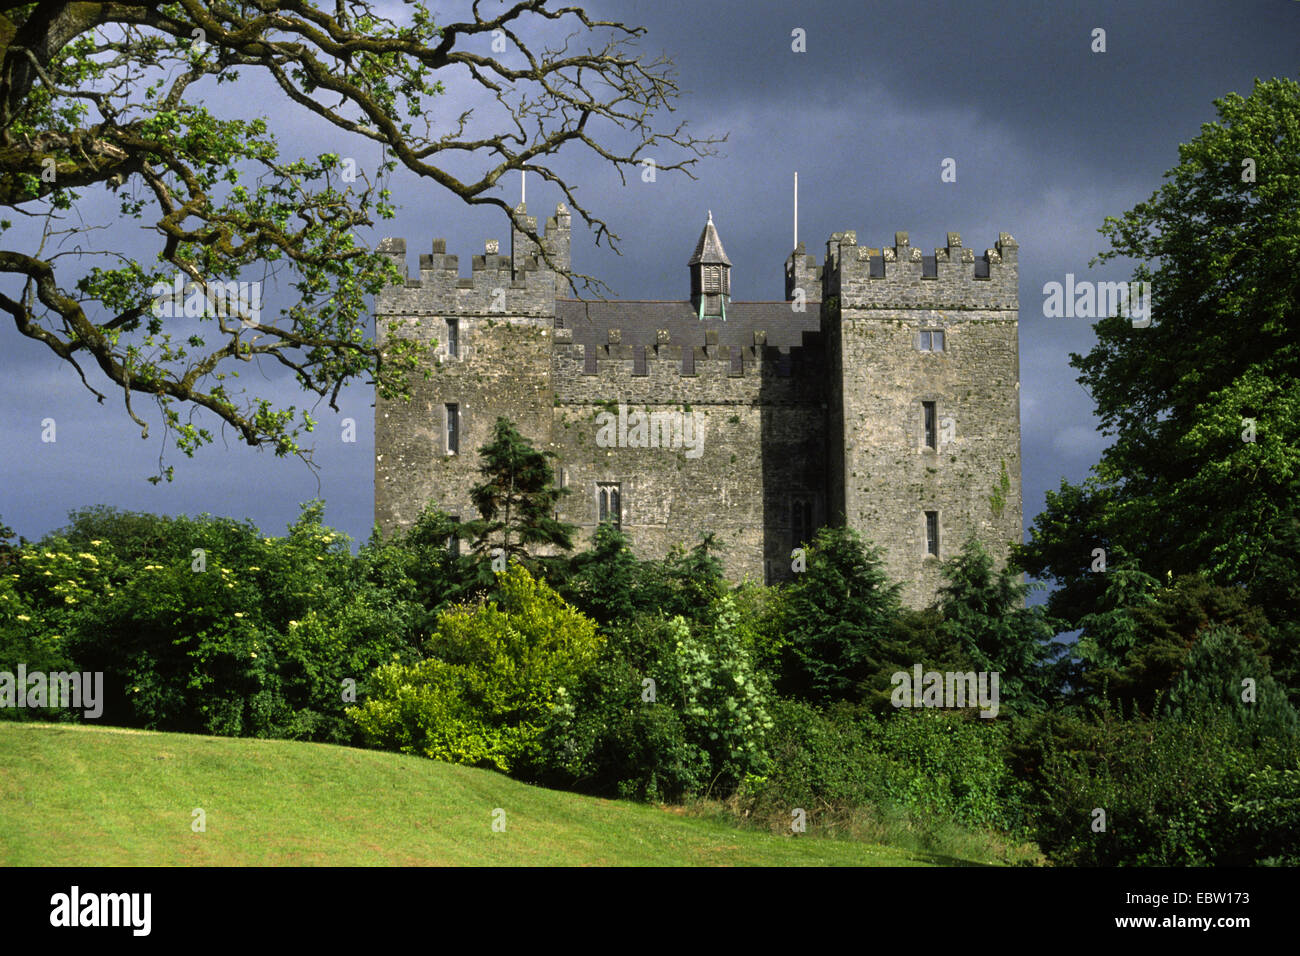 Bunratty Castle at sunshine and upcoming thunderstorm, Ireland, Clarens, Bunratty - Stock Image